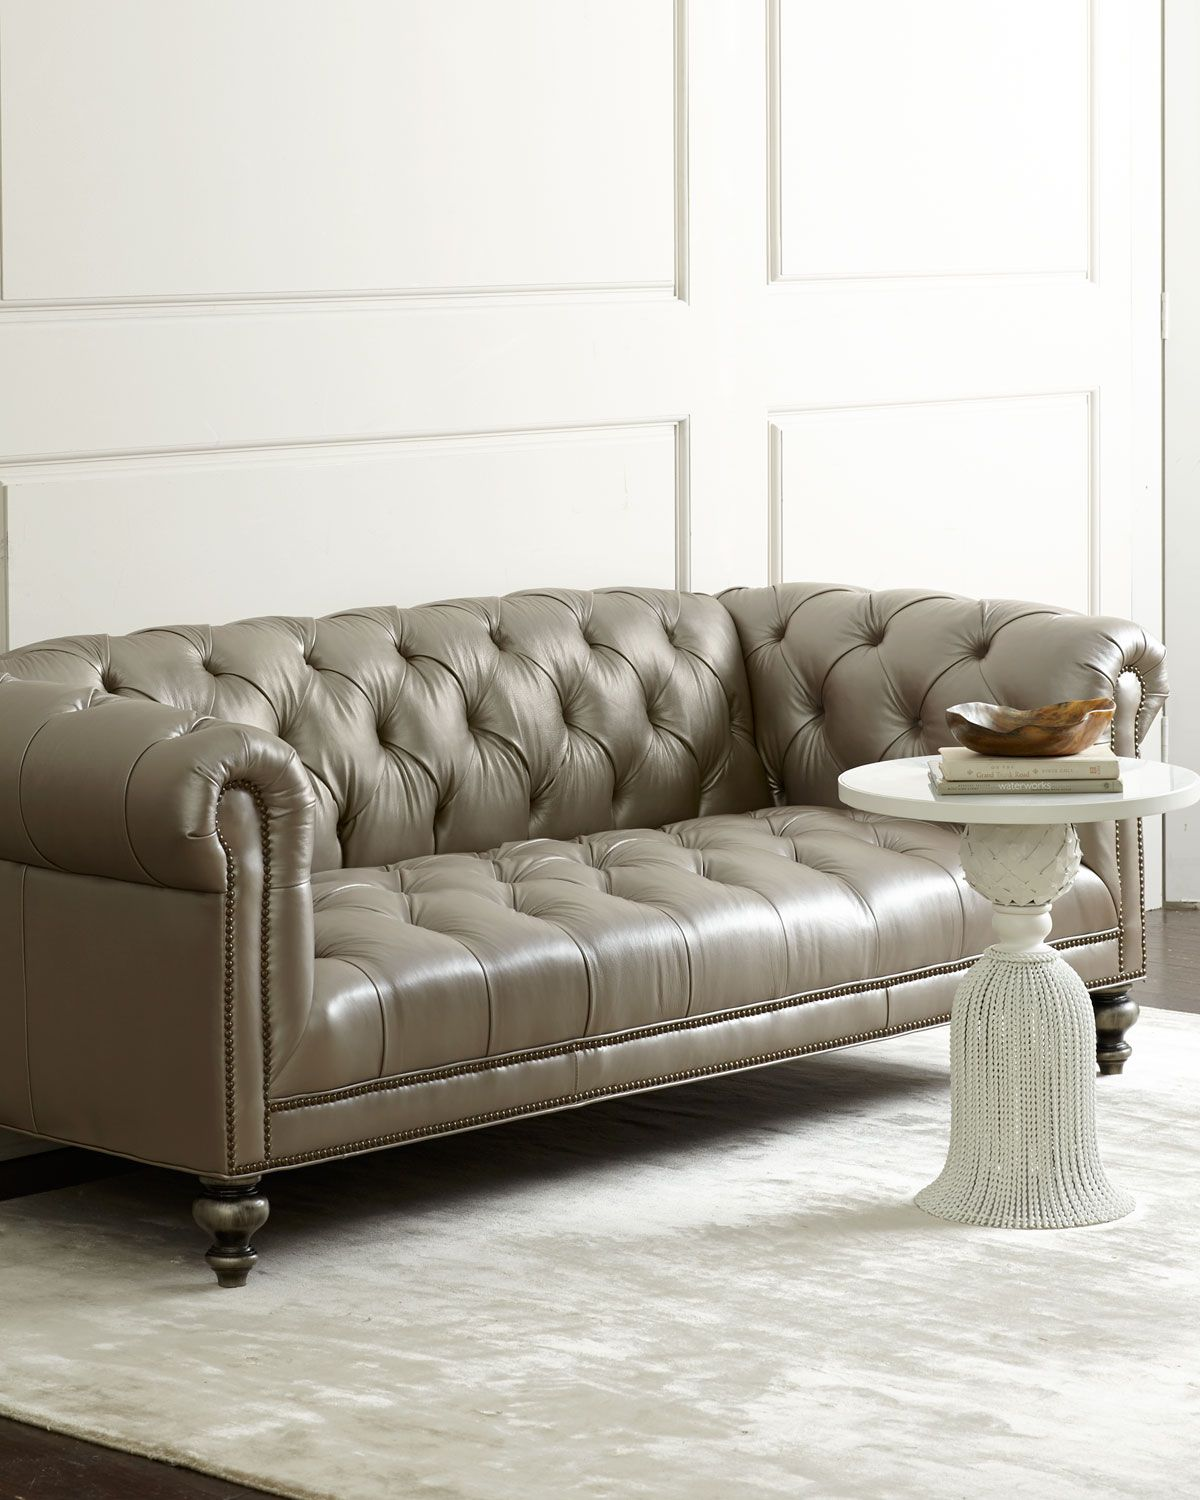 Chesterfield Möbel Morgan Gray Tufted Leather Sofa Grey Old Hickory Tannery